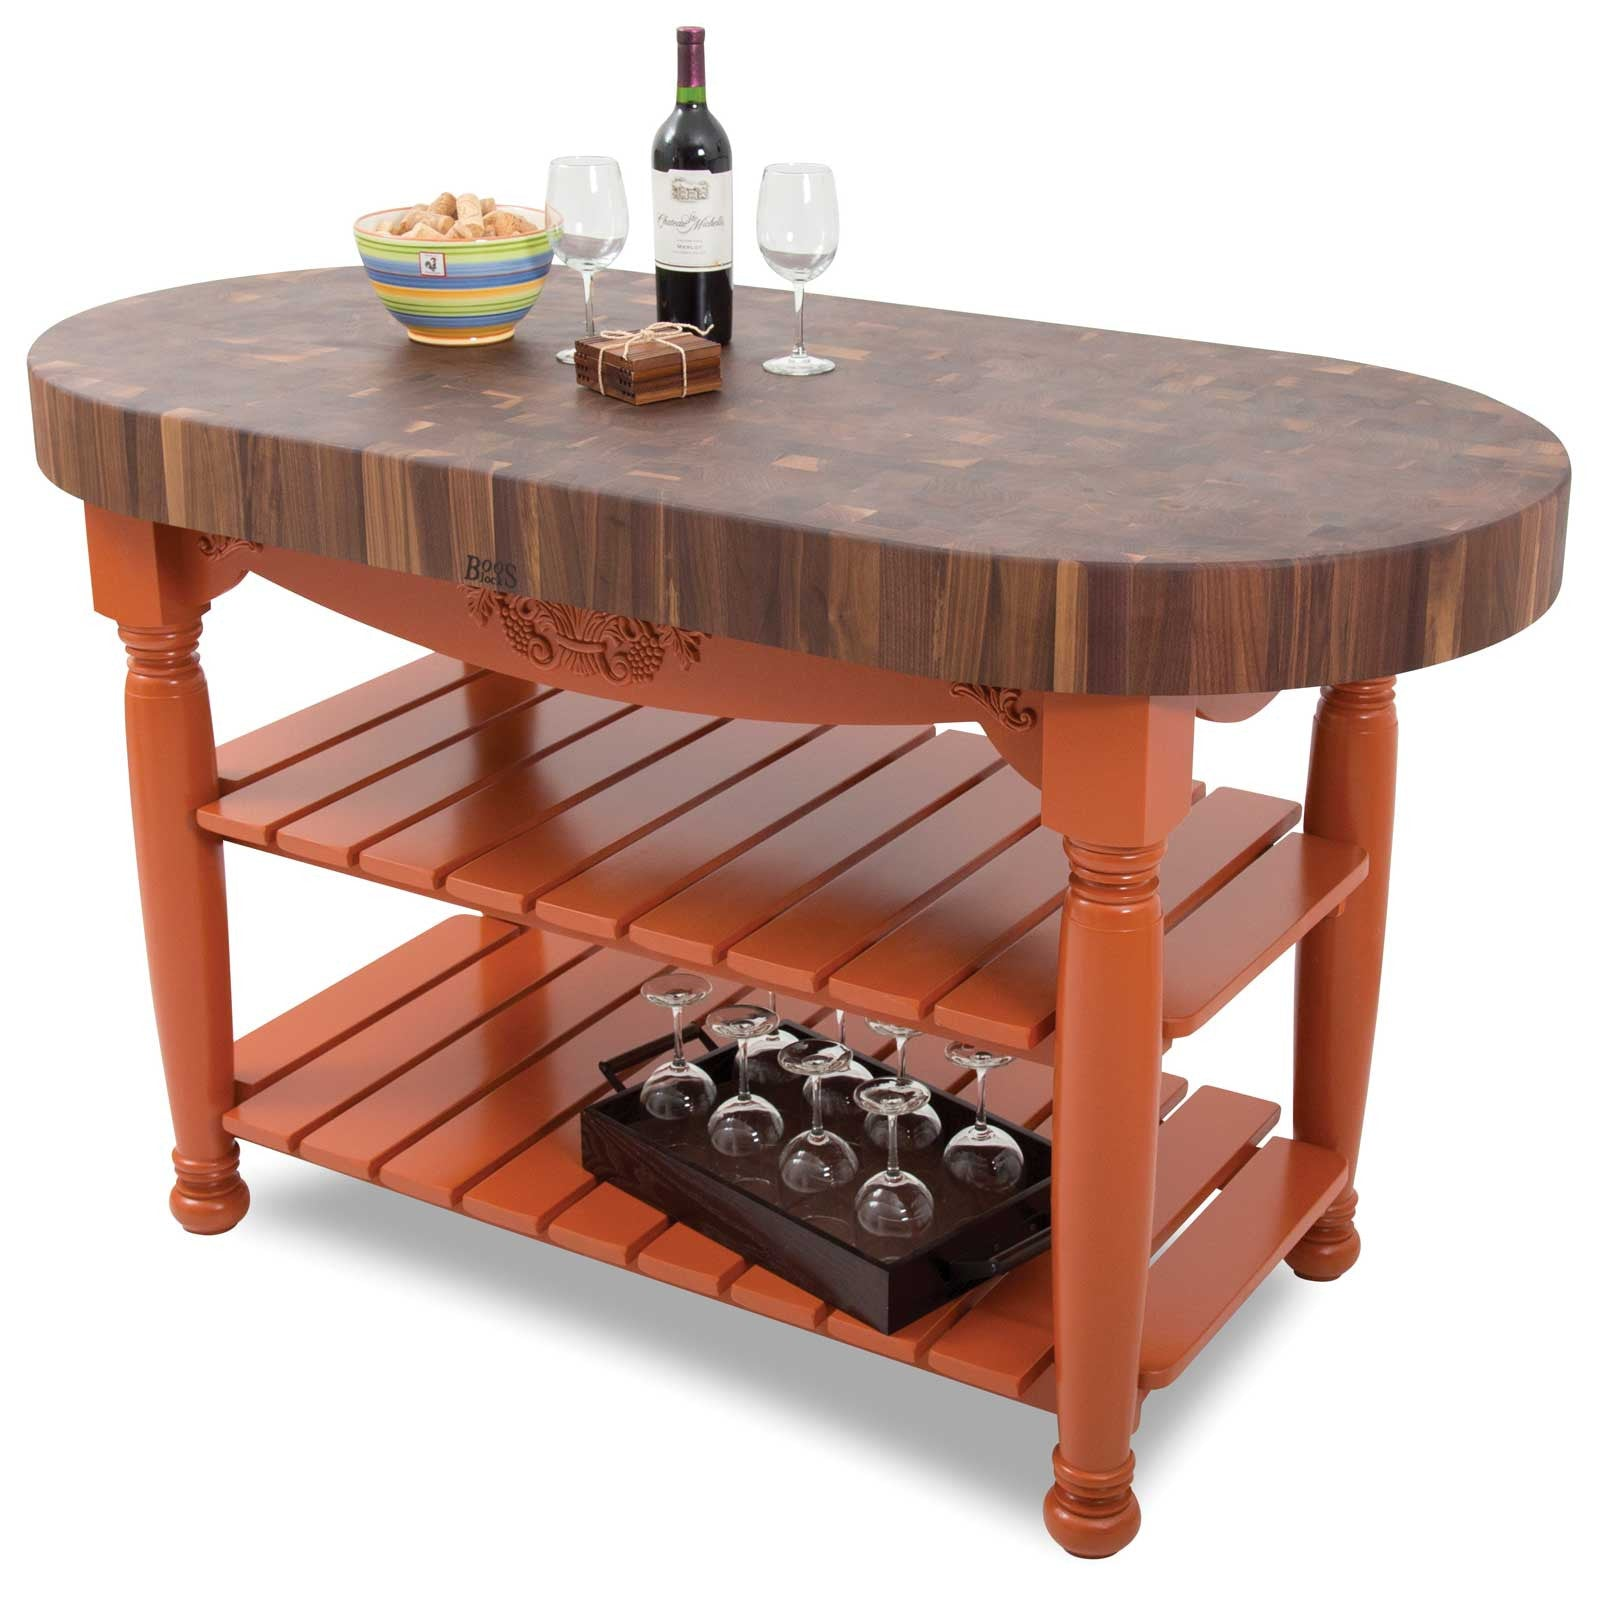 "John Boos 60"" x 30"" x 4"" Walnut Top Harvest Table"